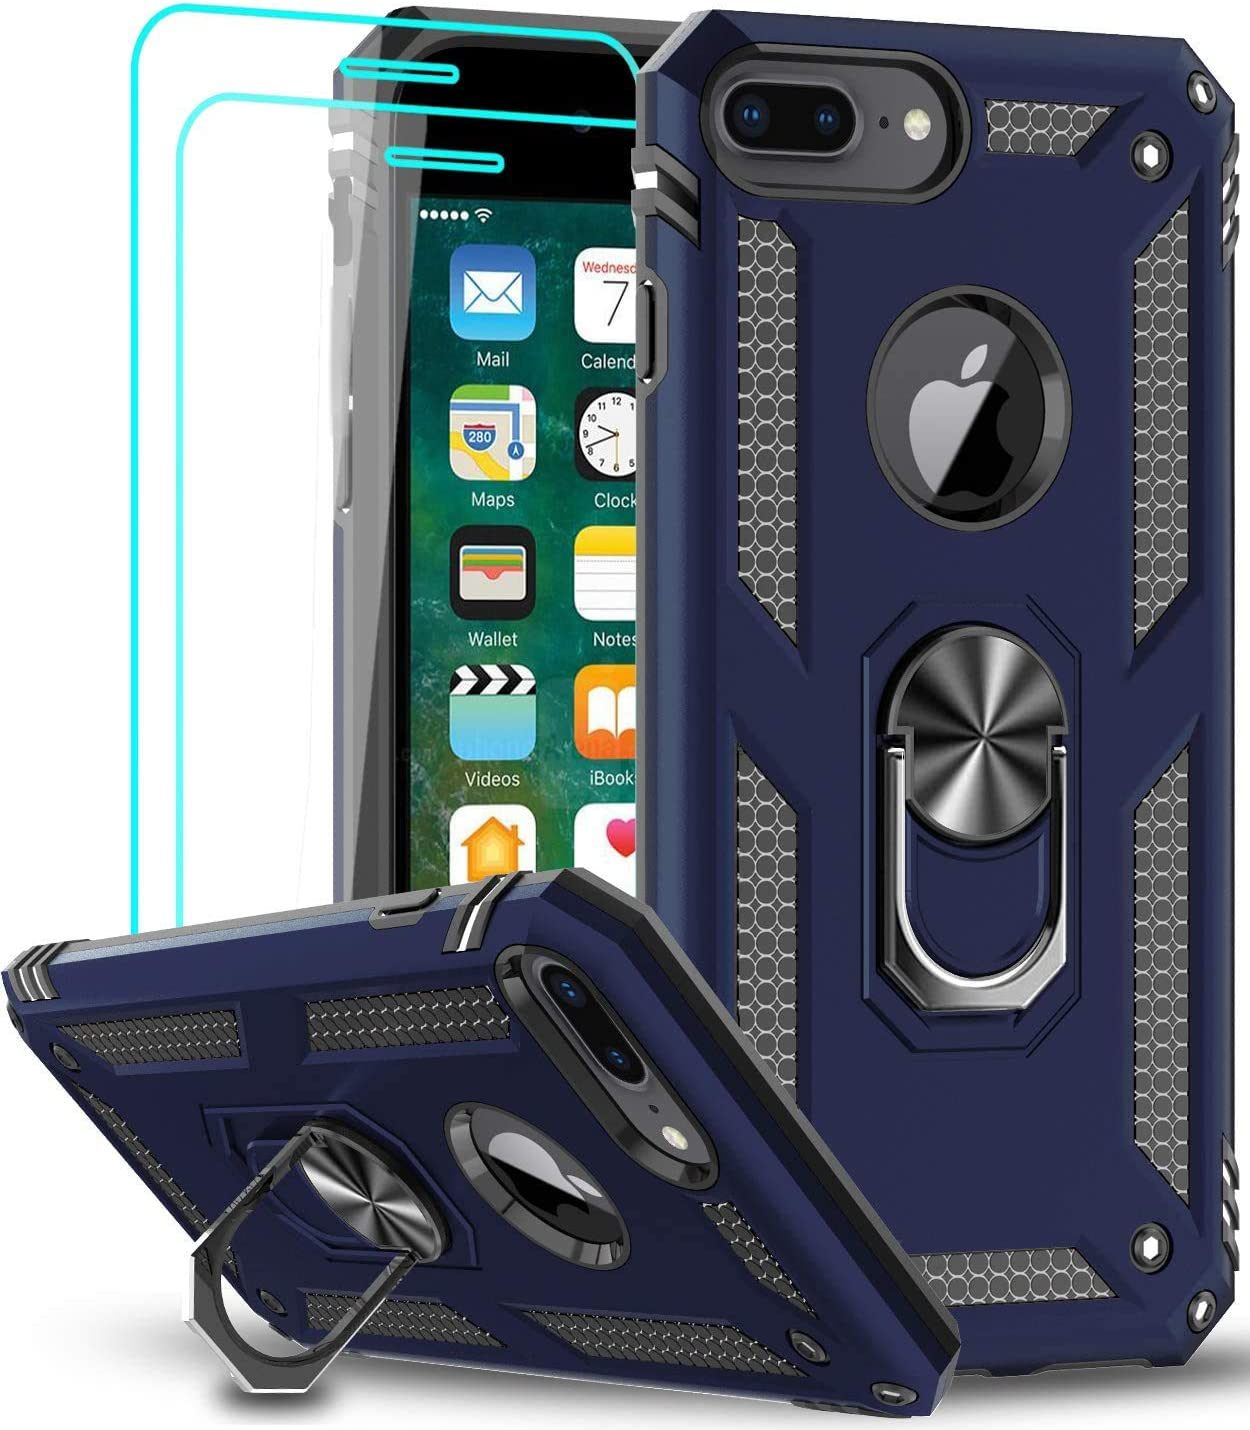 iPhone 8 Plus Case, iPhone 7 Plus Case, iPhone 6 Plus Case with Tempered Glass Screen Protector [2Pack], LeYi Military Grade Phone Case with Rotating Holder Kickstand for iPhone 6s Plus, Blue